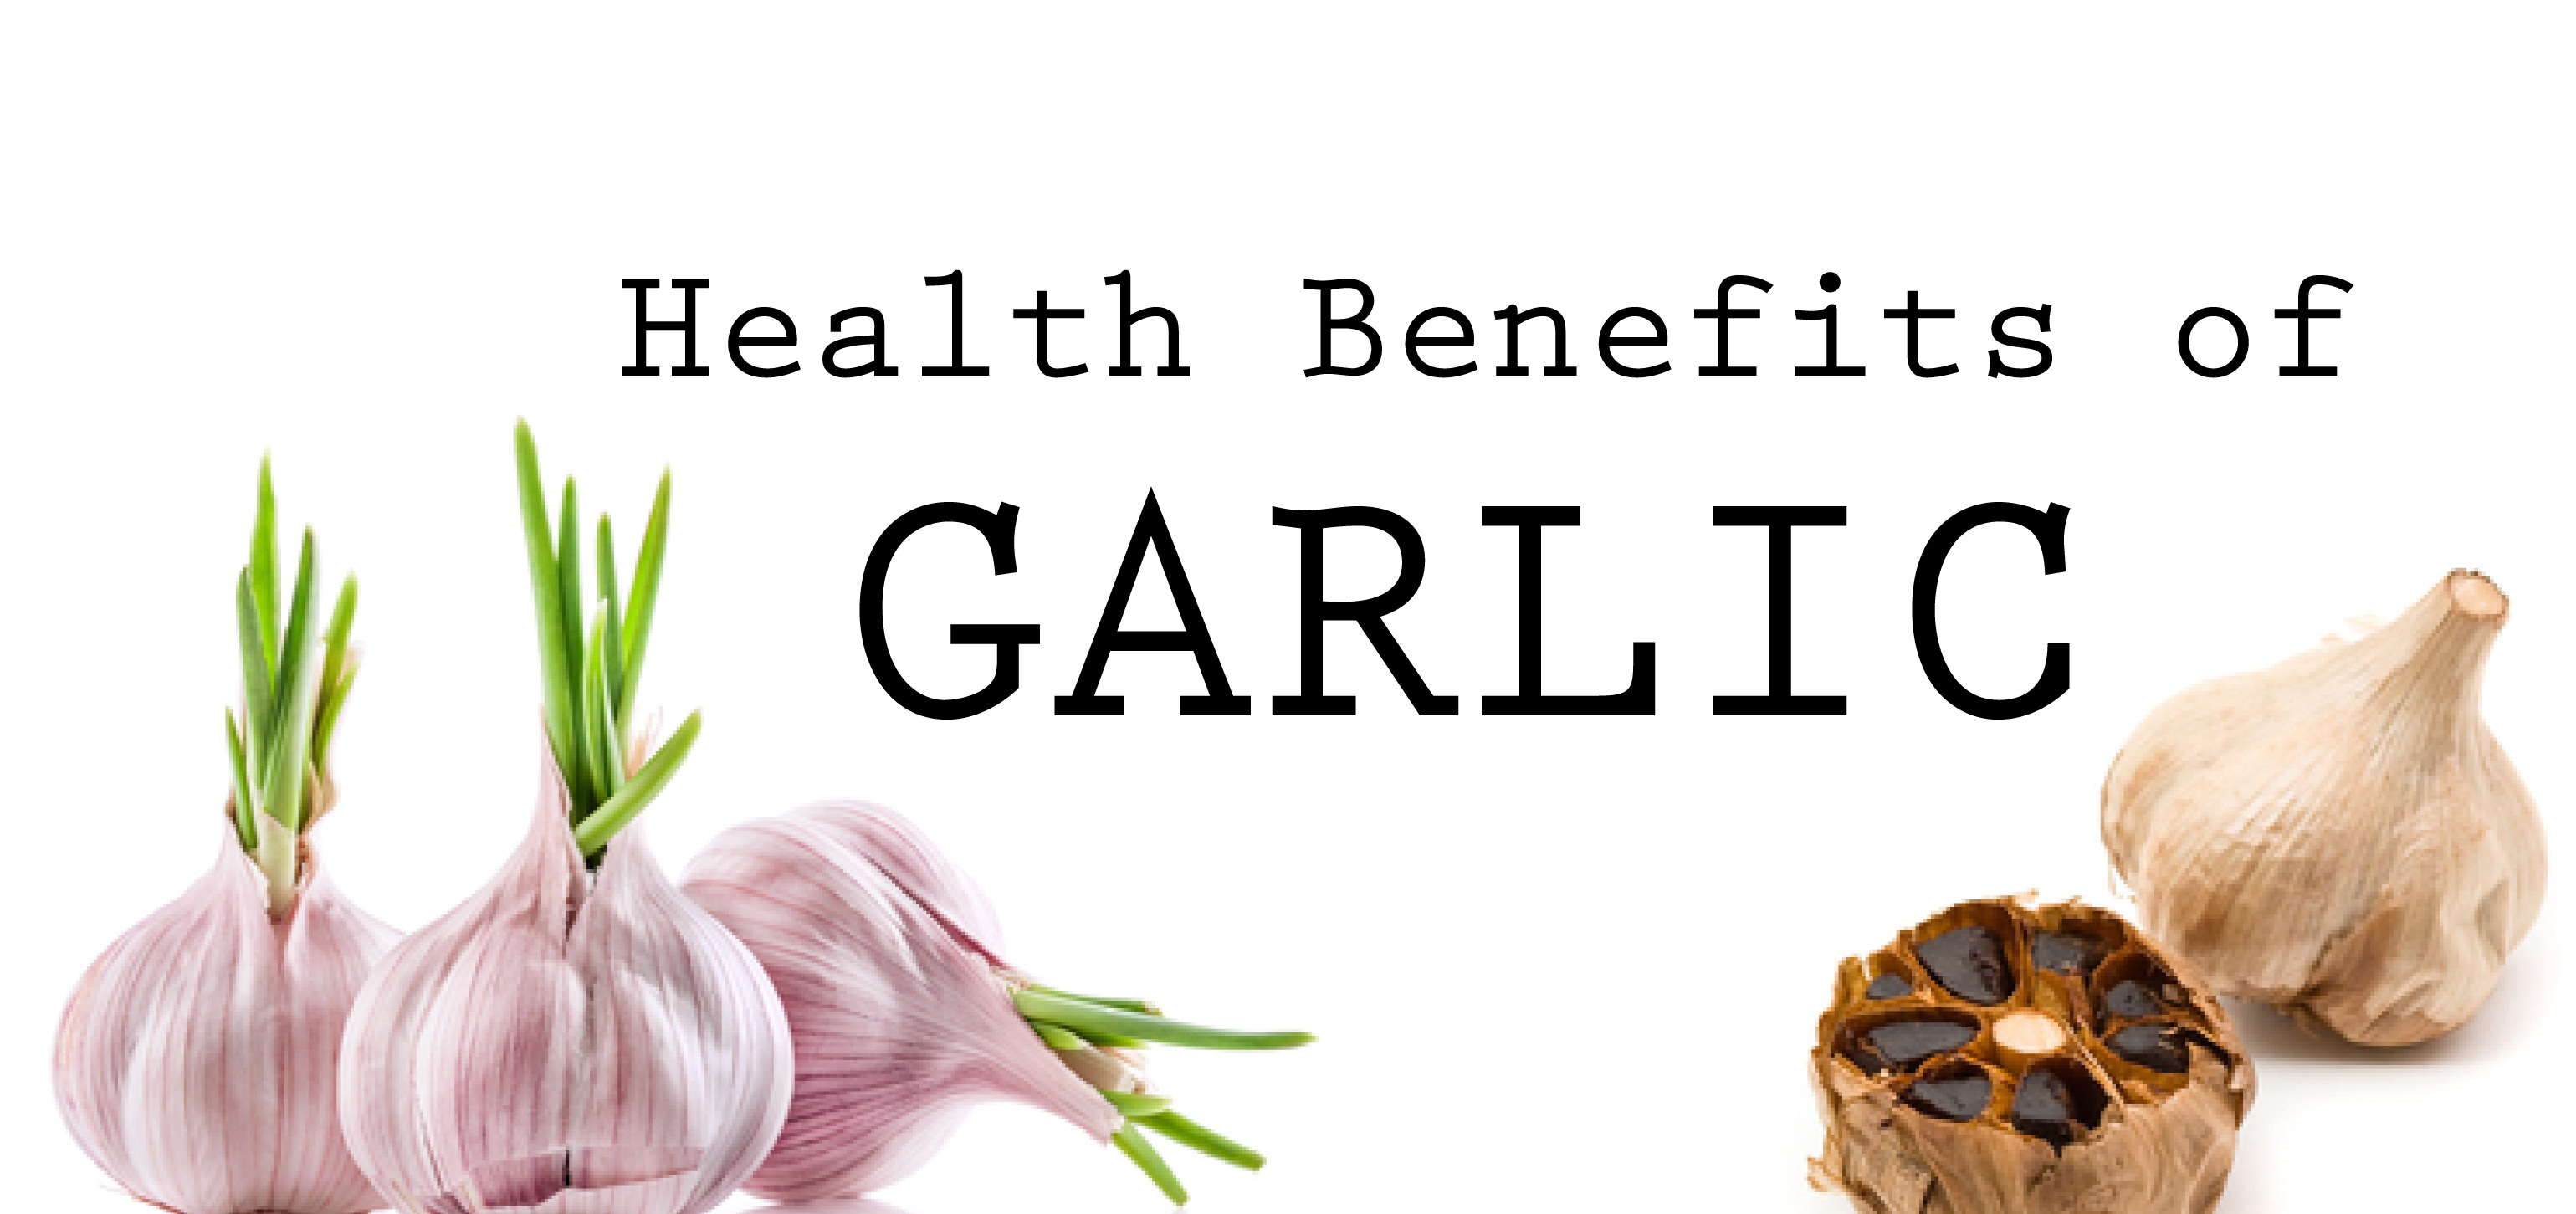 benefits of garlic Here are 3 health benefits of garlic for men garlic is healthy for everyone, but here are some health benefits of garlic that apply specifically to men.